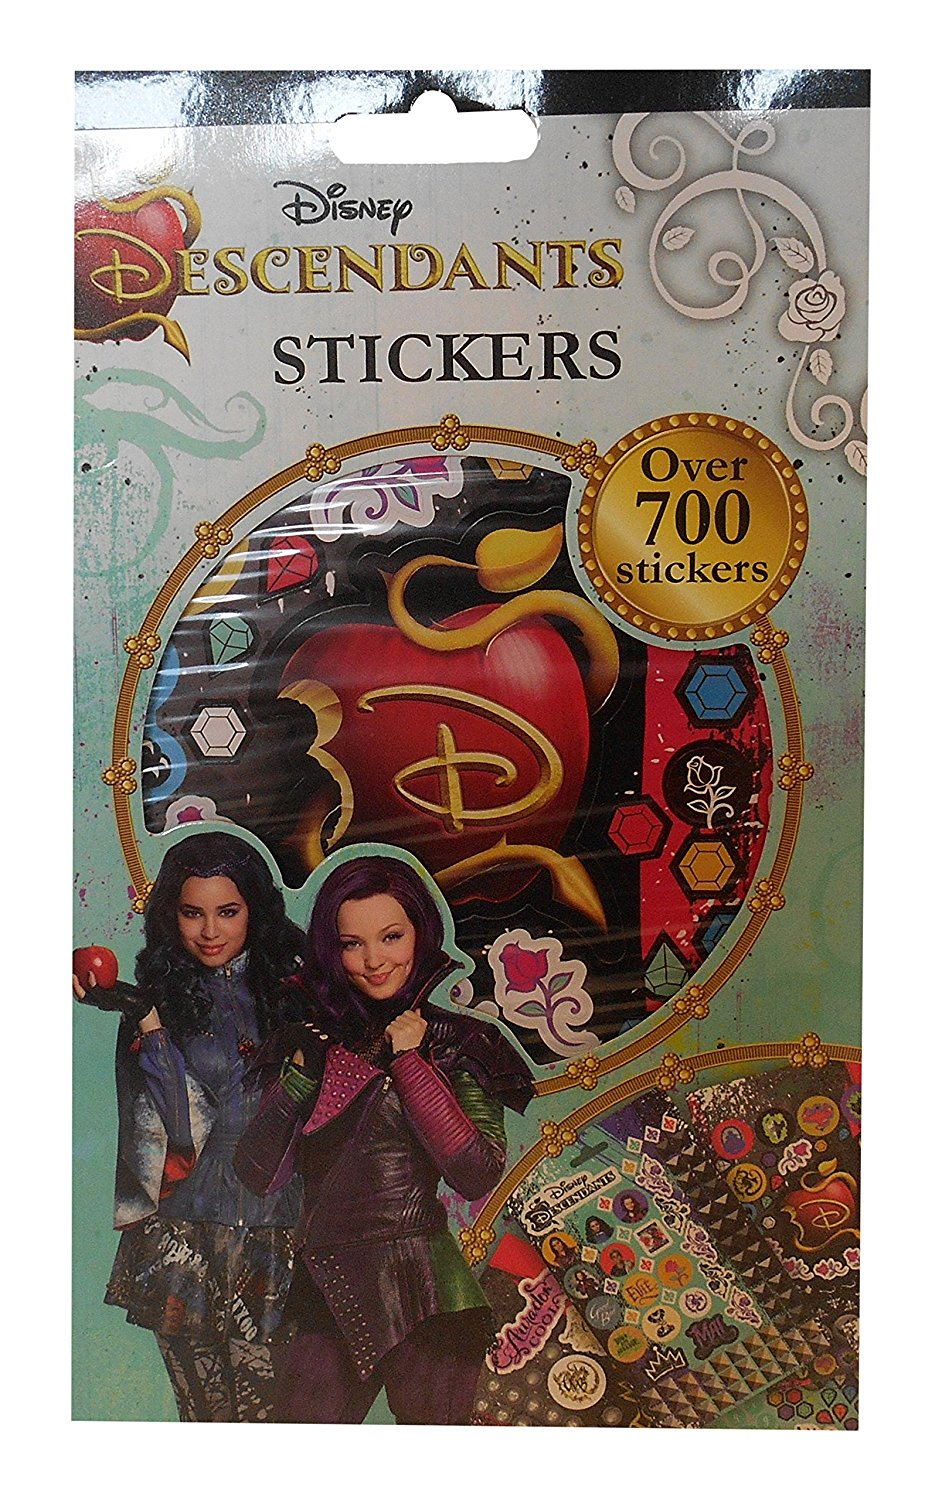 Disney Descendants Party Ideas Stickers For A Picture Frame Or Goody Bags